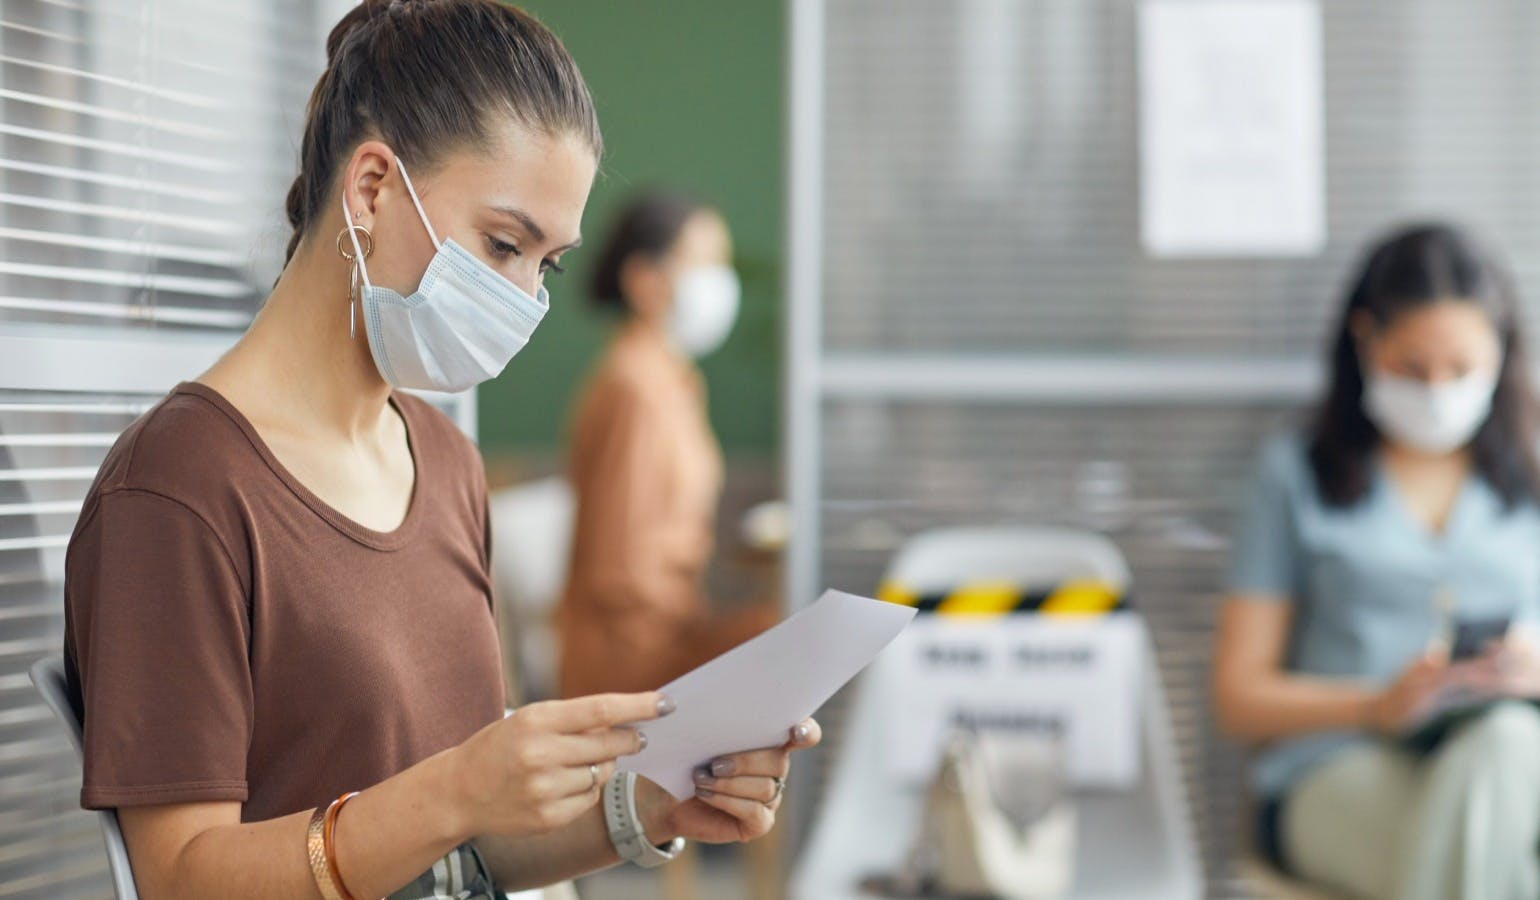 young woman wearing mask and holding document while waiting in line in office